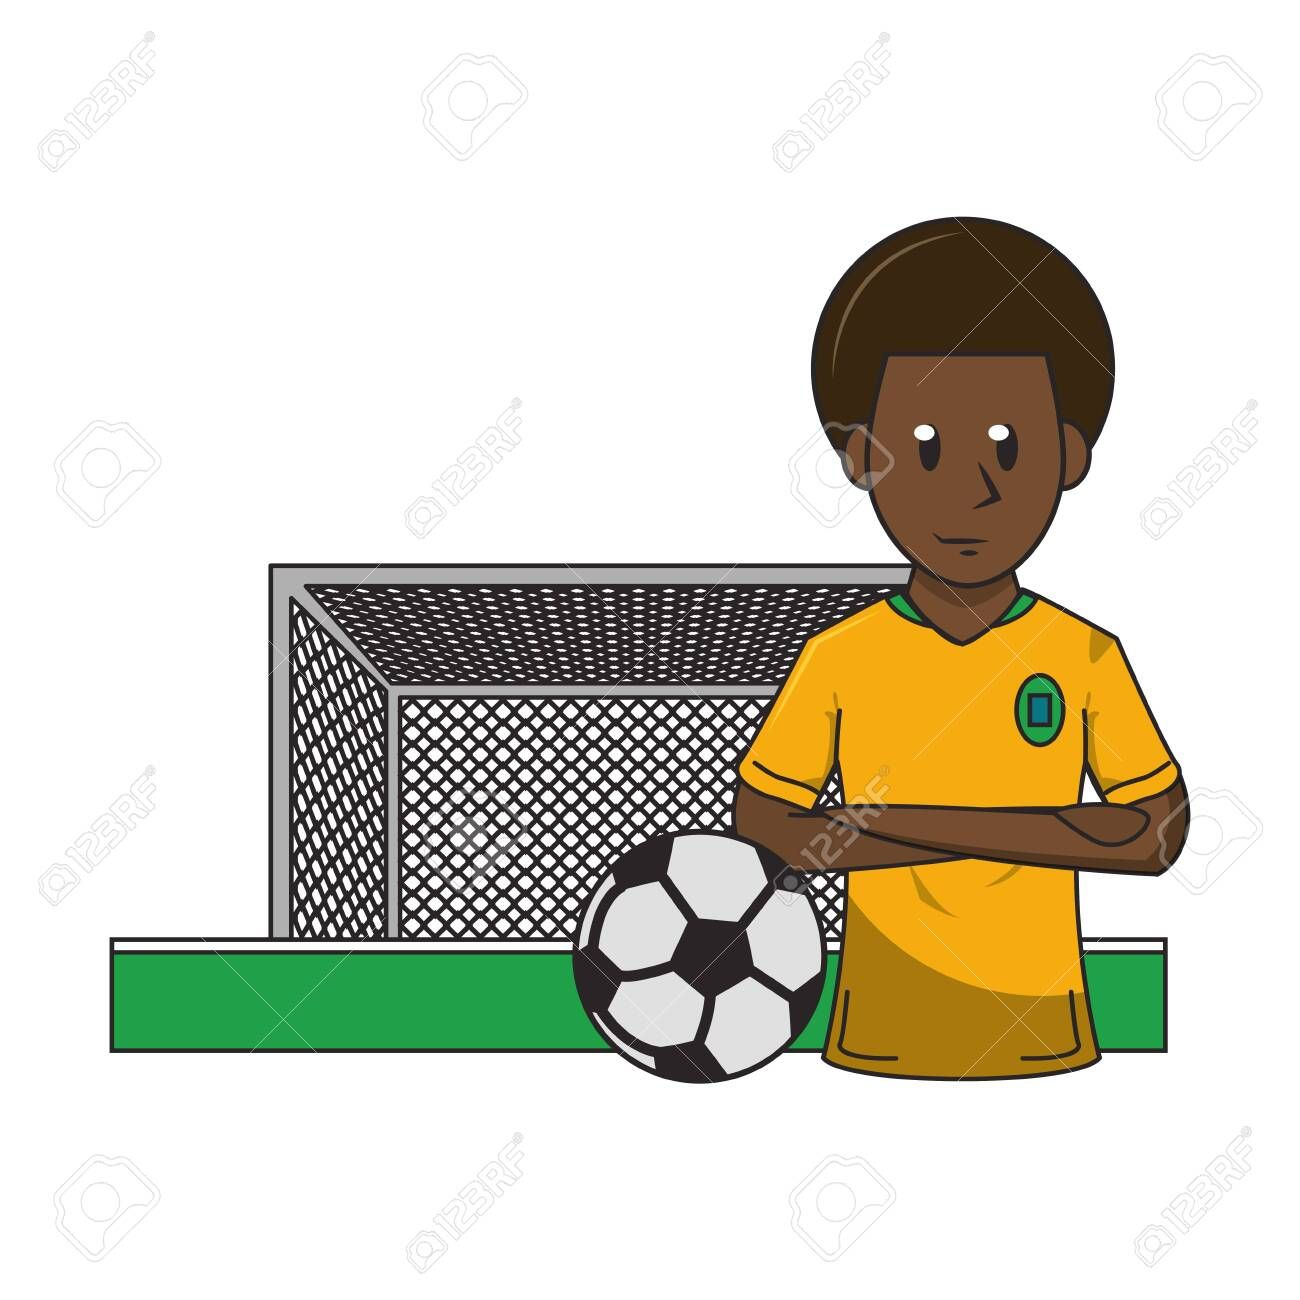 Soccer Player With Arms Crossed And Ball On Playfield With Goal Cartoon Vector Illustration Grap Cartoons Vector Photography Backdrop Stand Vector Illustration